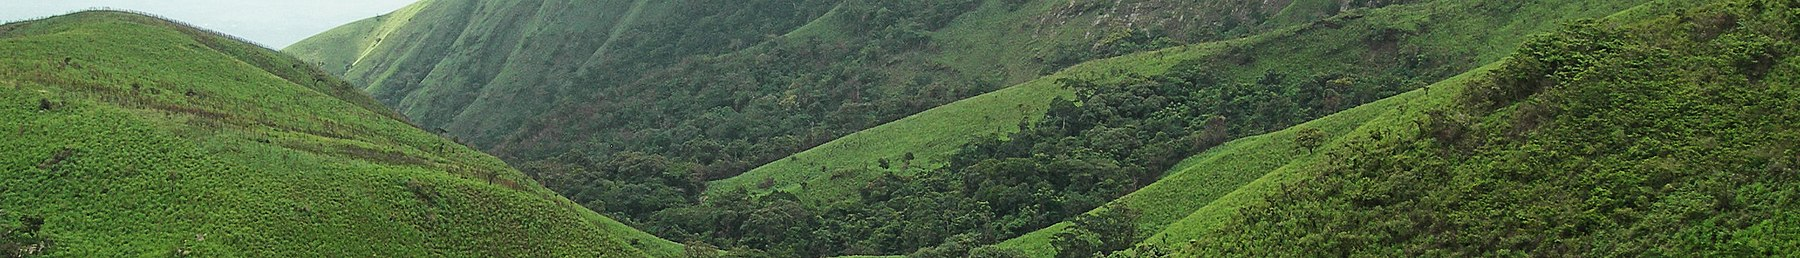 Mount Nimba Strict Nature Reserve banner.jpg